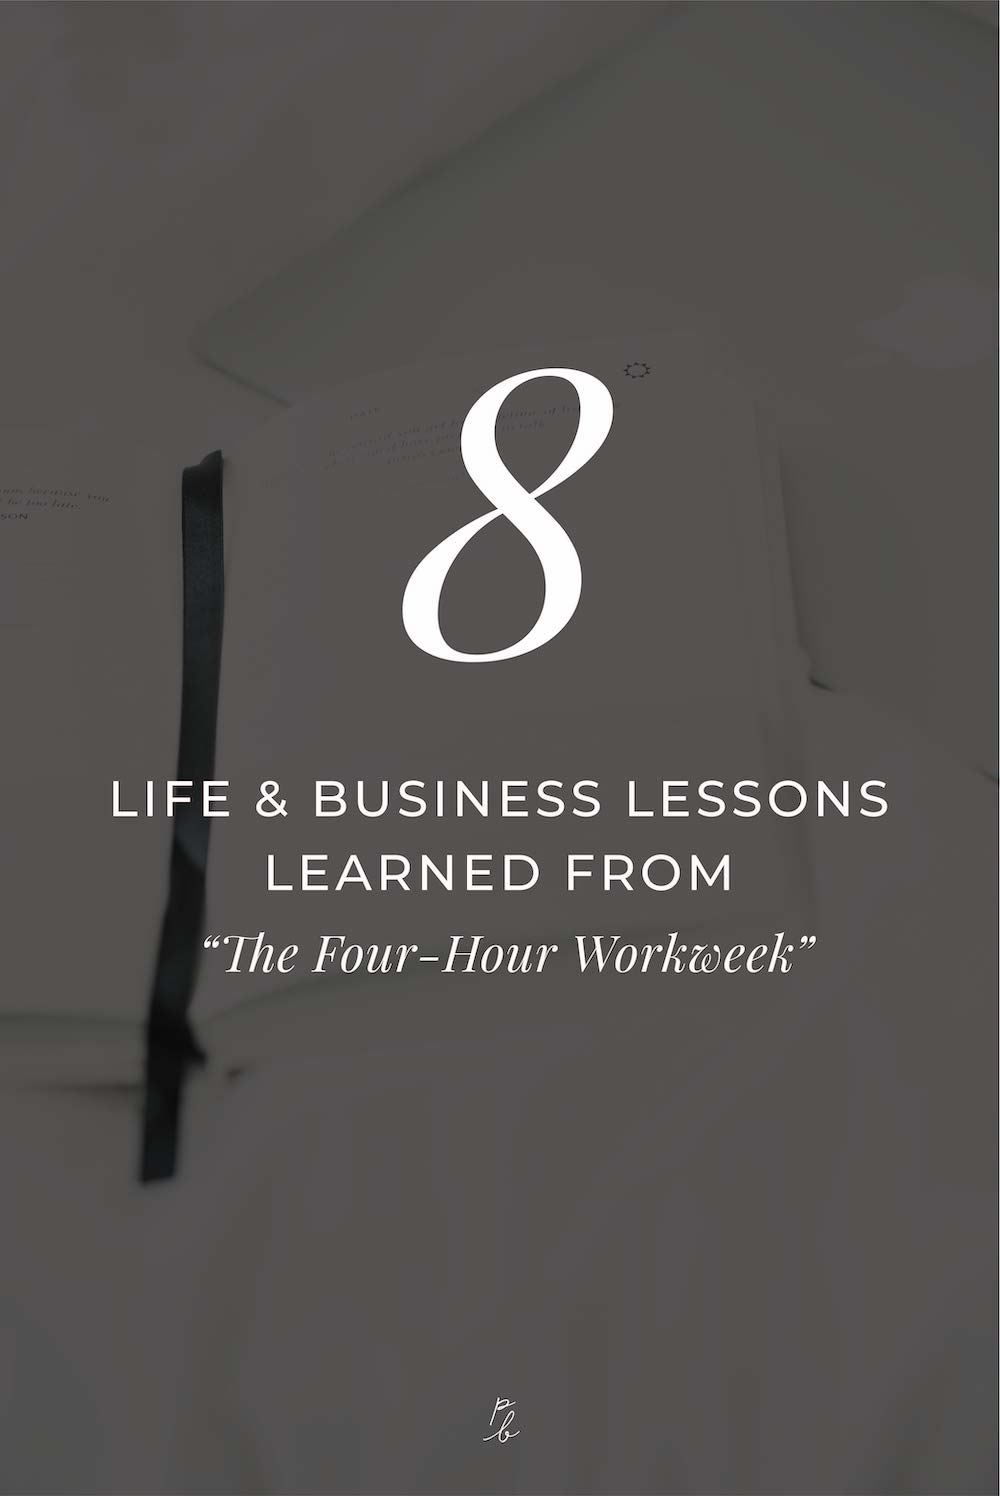 3-8 life and business lessons learned from the 4 hour workweek.jpg